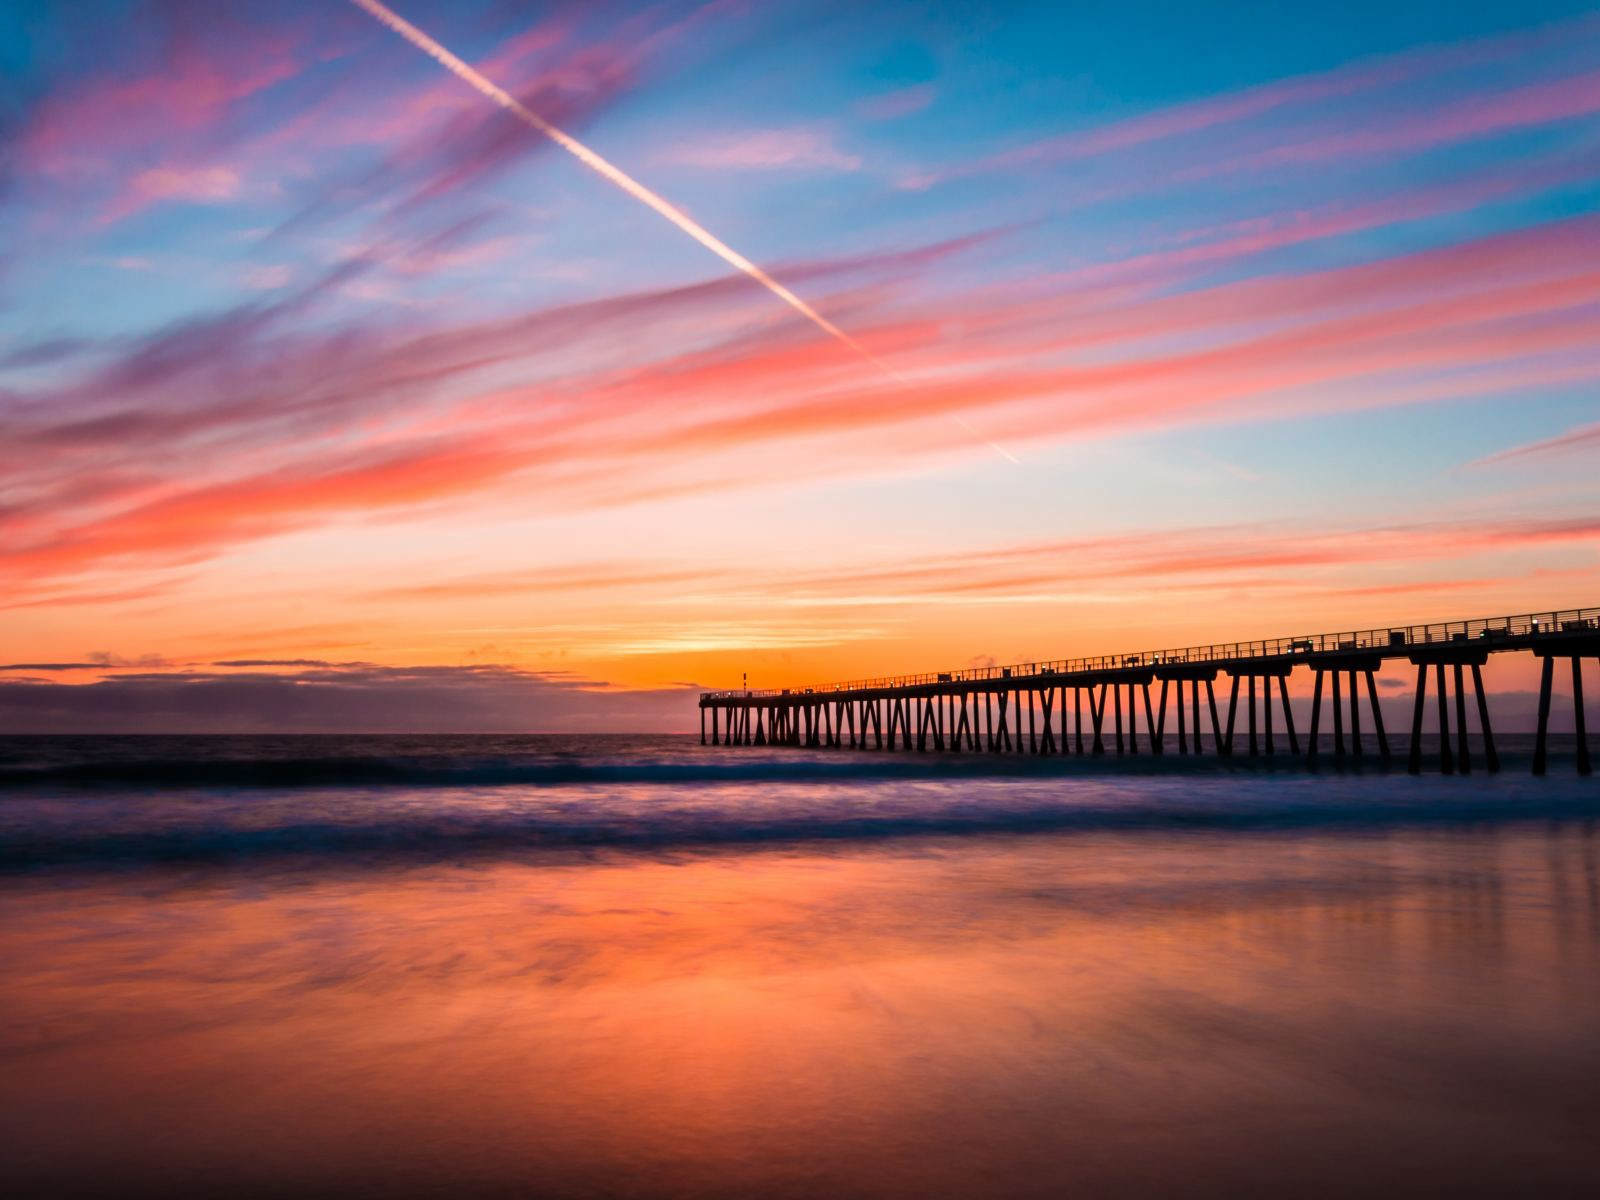 A view of Hermosa Beach during a sunset with a bridge blocking the view.